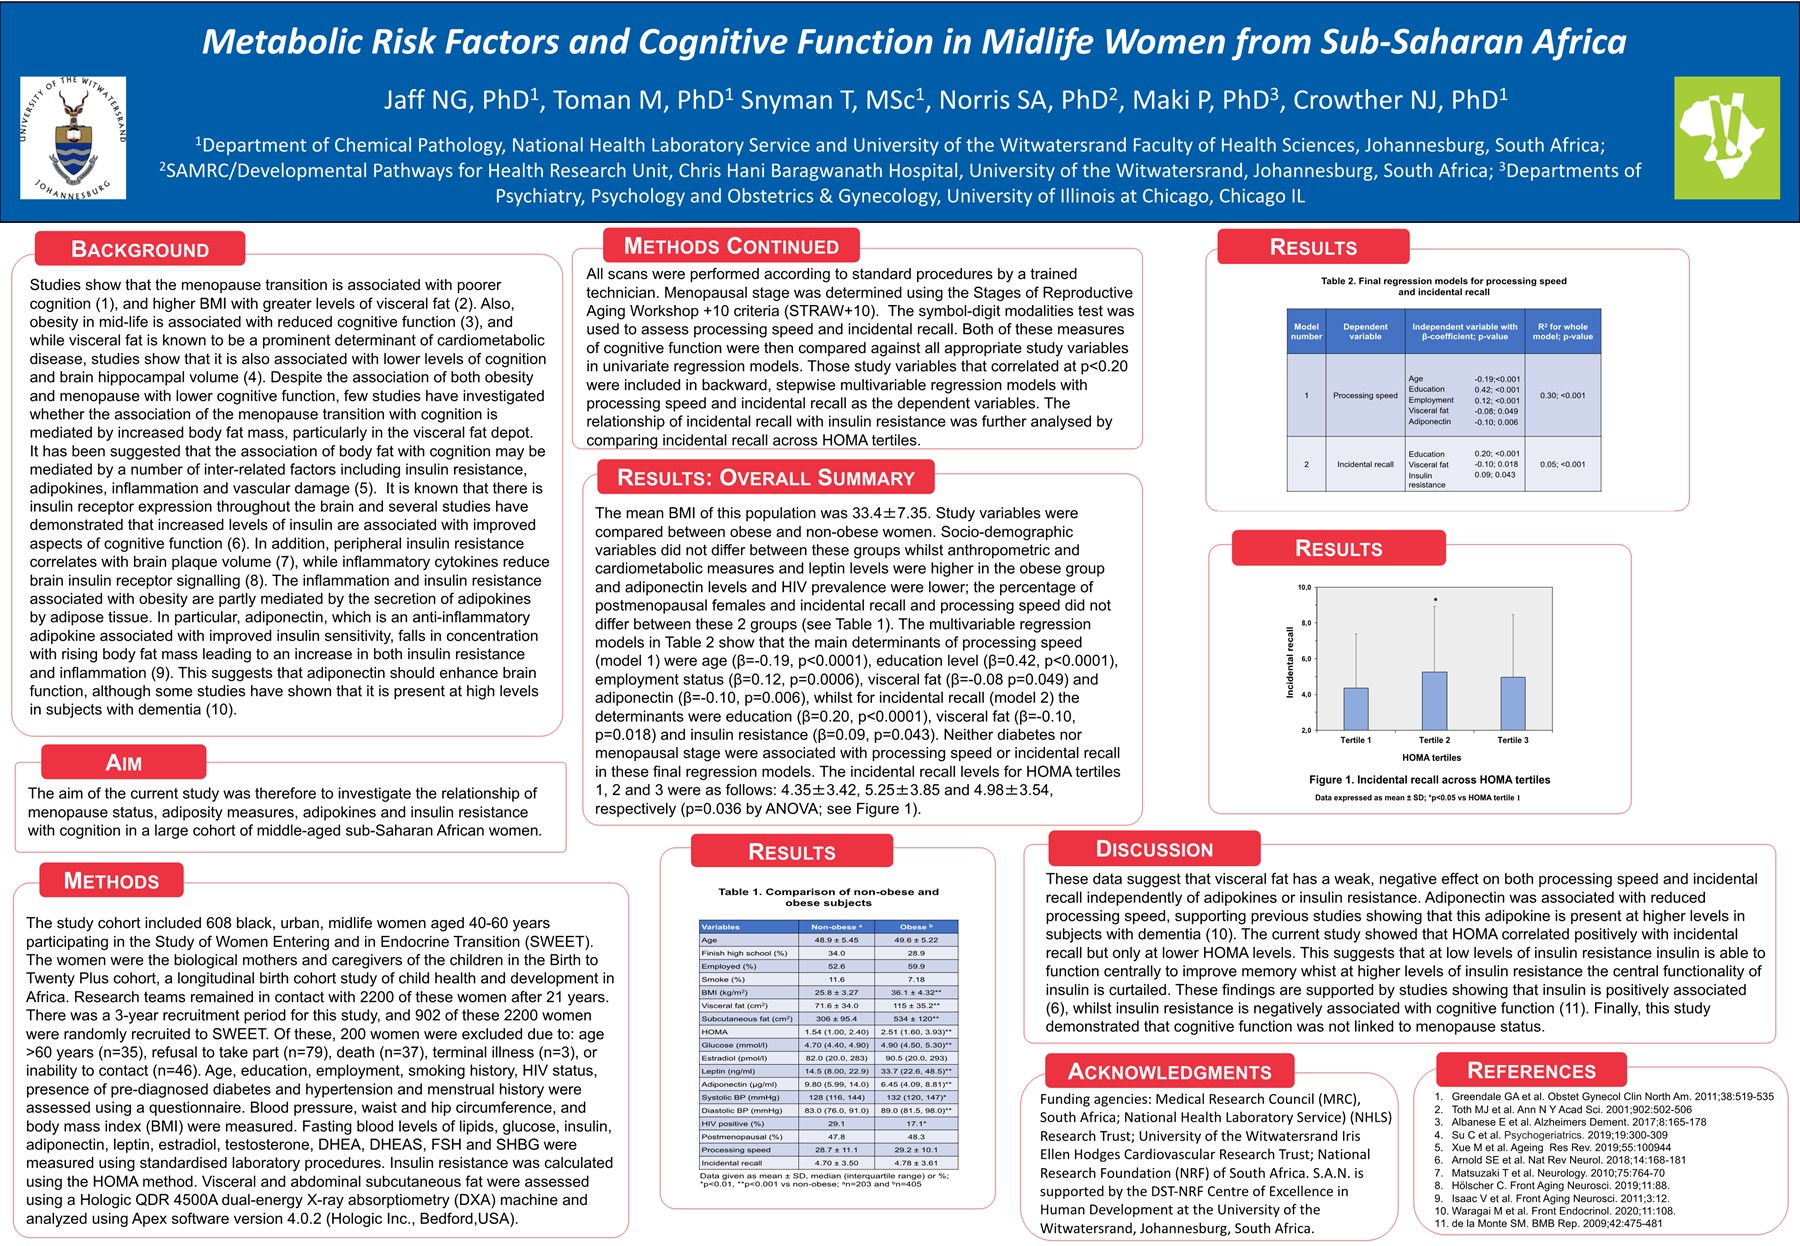 Metabolic Risk Factors and Cognitive Function in Midlife Women from Sub-Saharan Africa